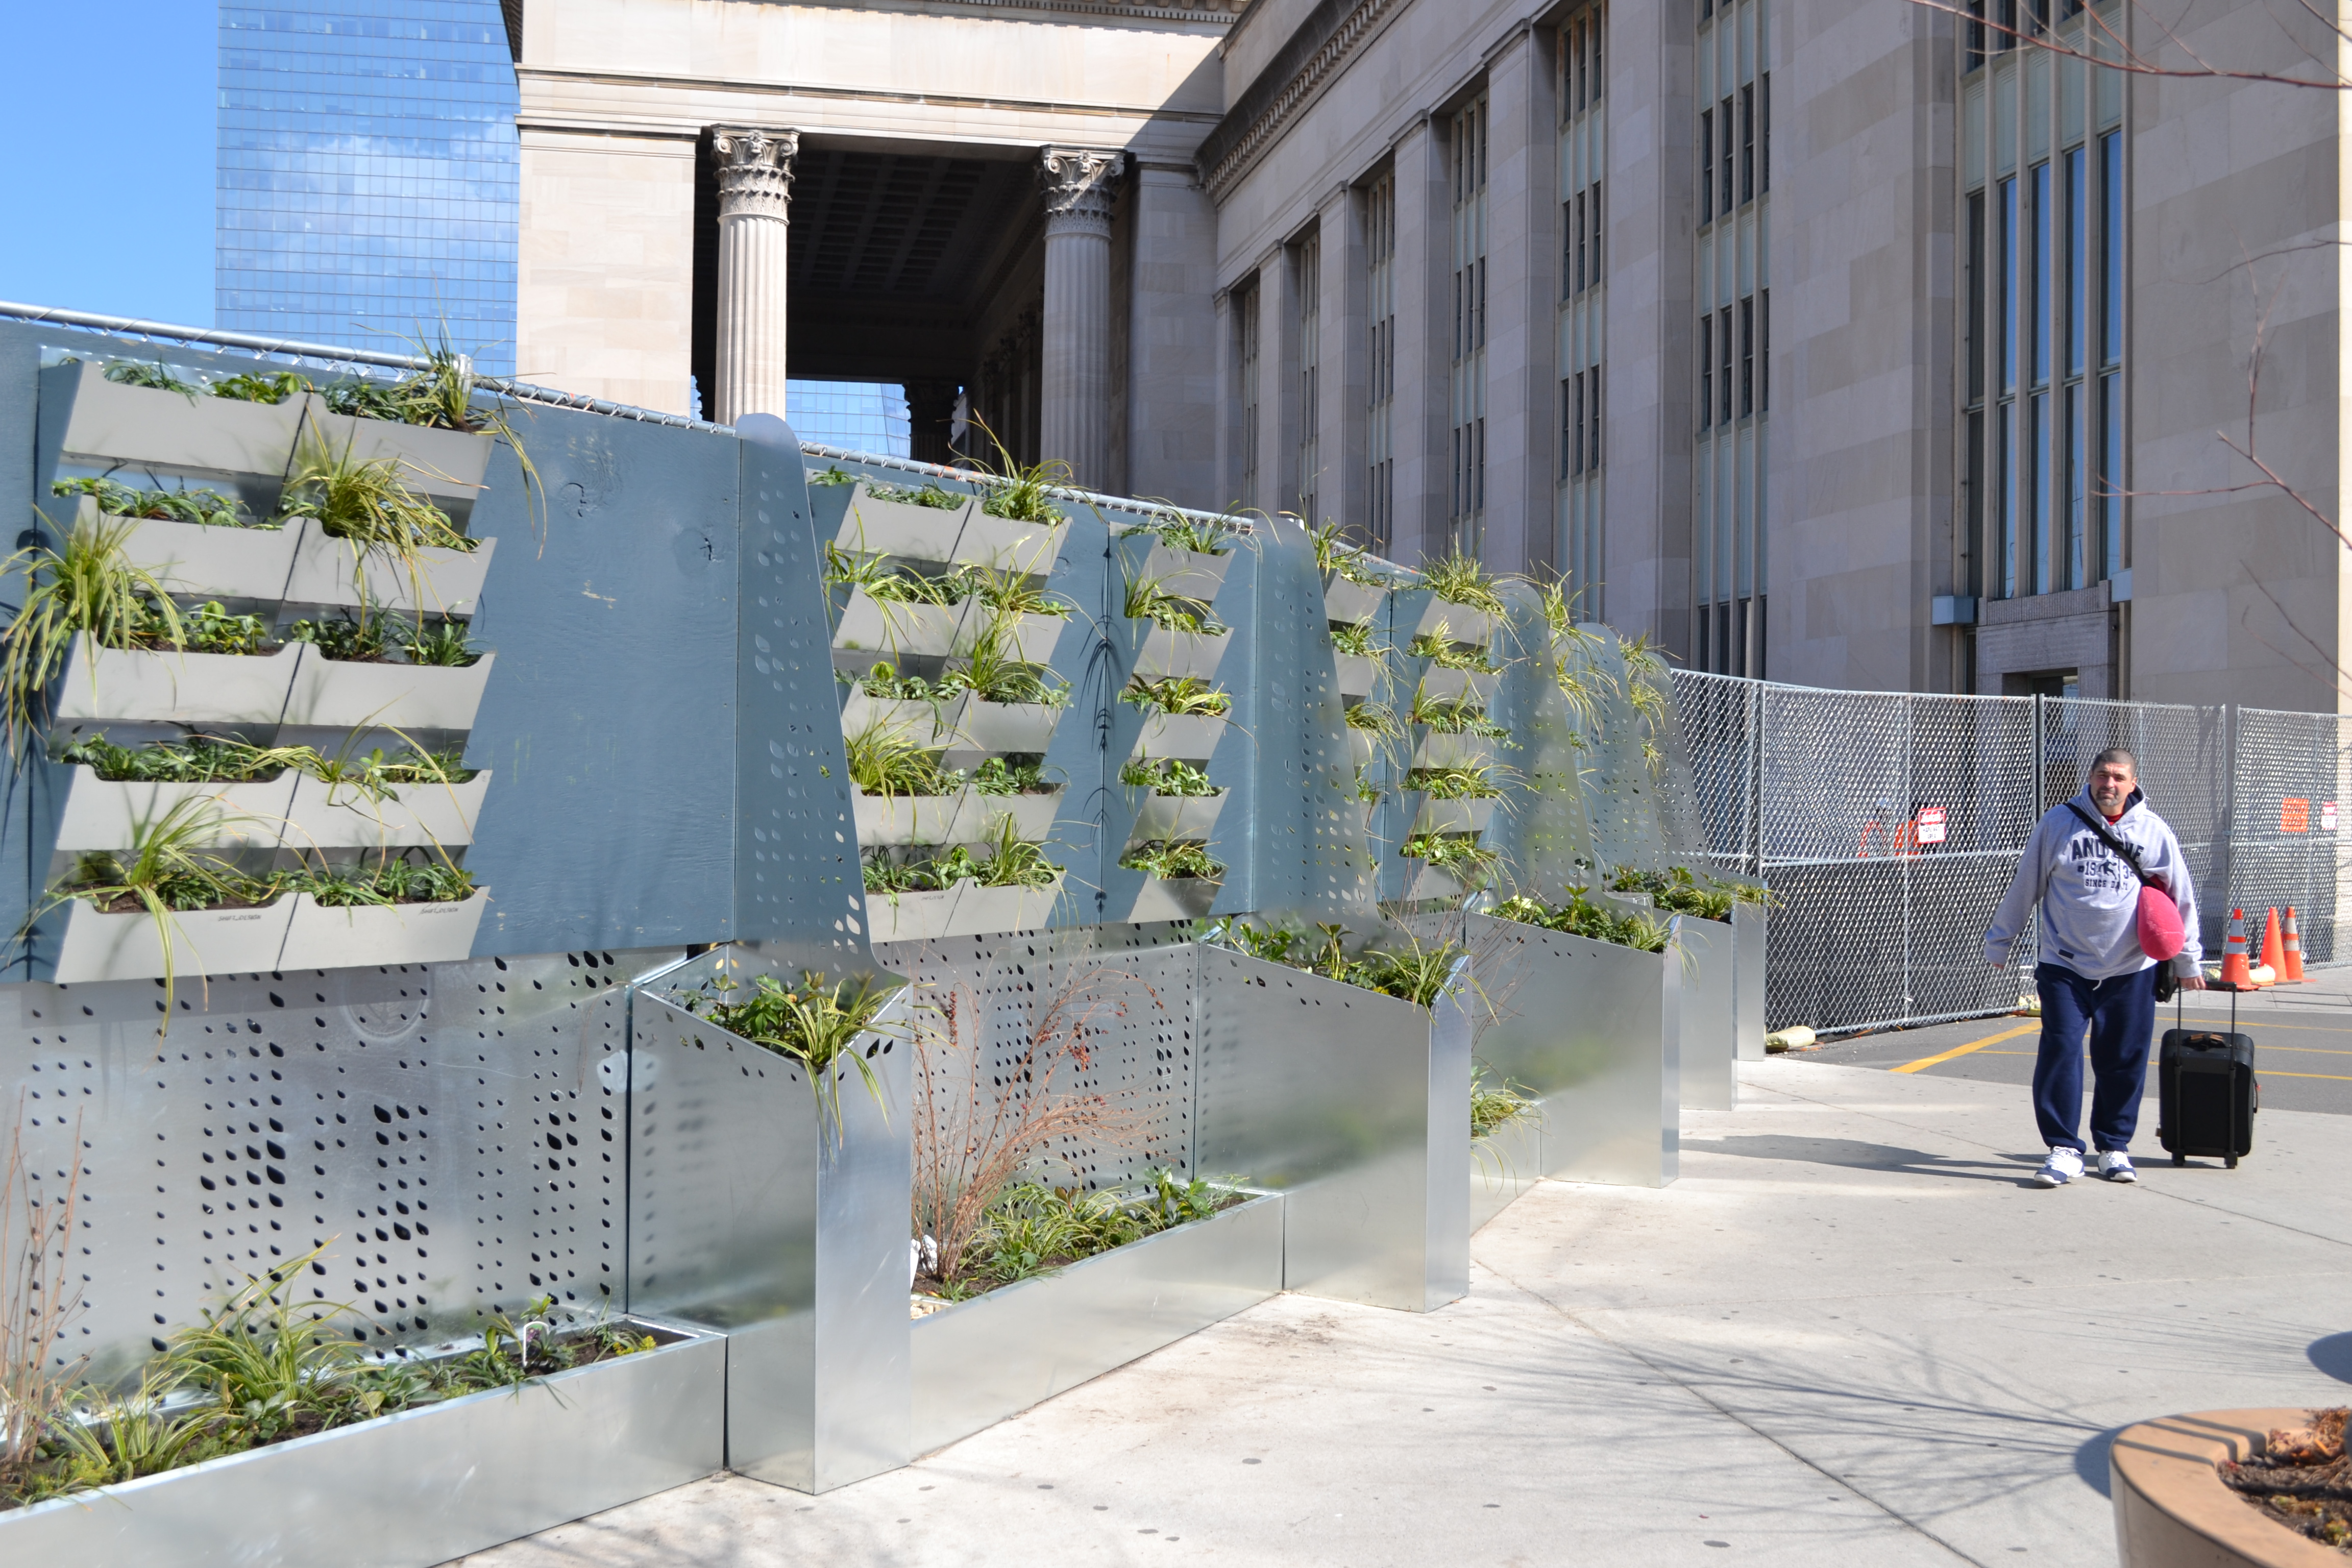 University City District installed modular plant walls to hide construction near The Porch